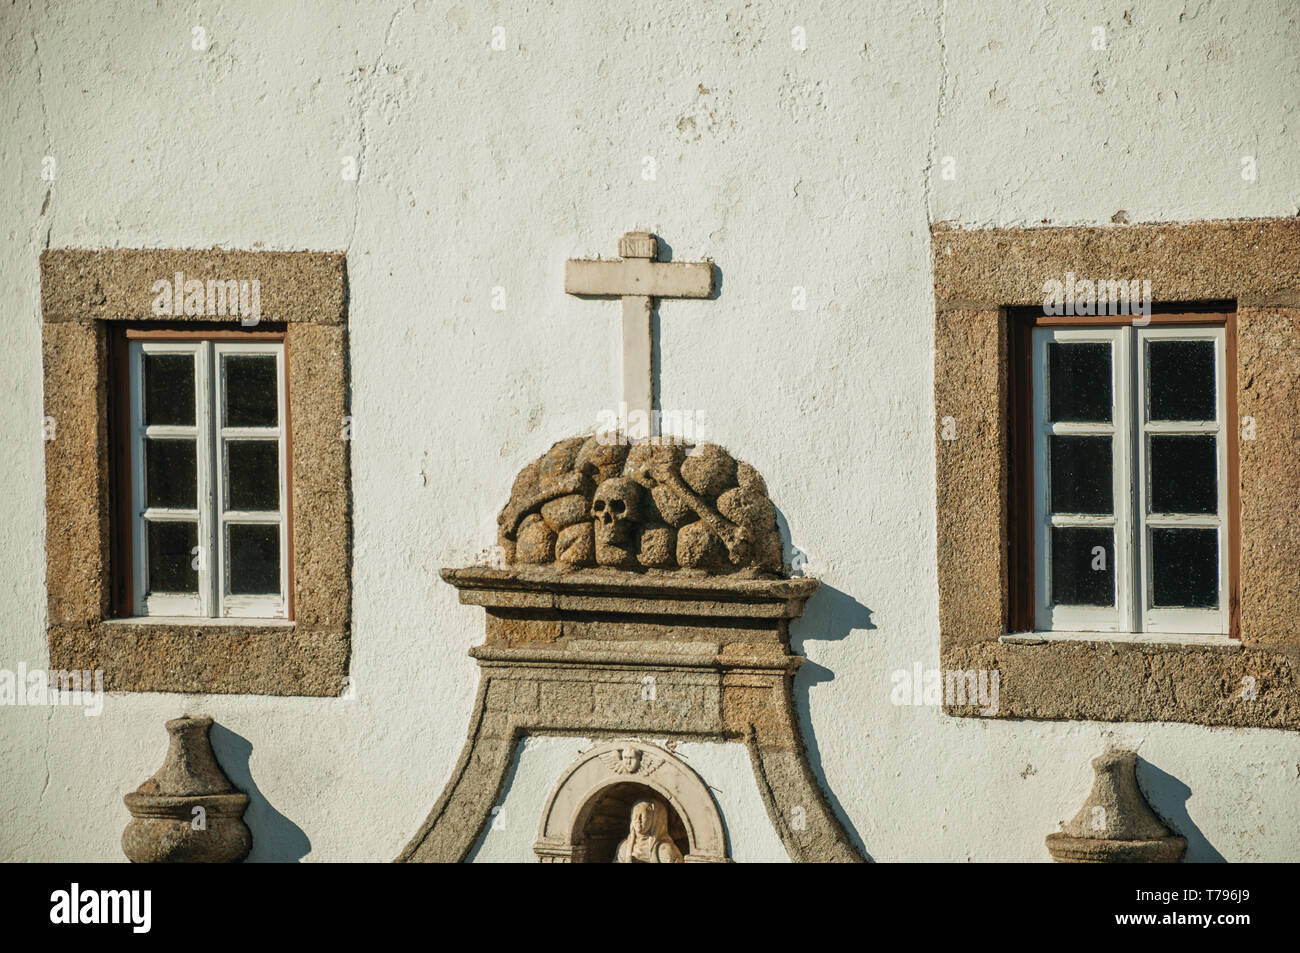 Skulls and cross carved in stone between windows embellishing the facade of church at Marvao. A medieval hamlet perched on a crag in Portugal. Stock Photo